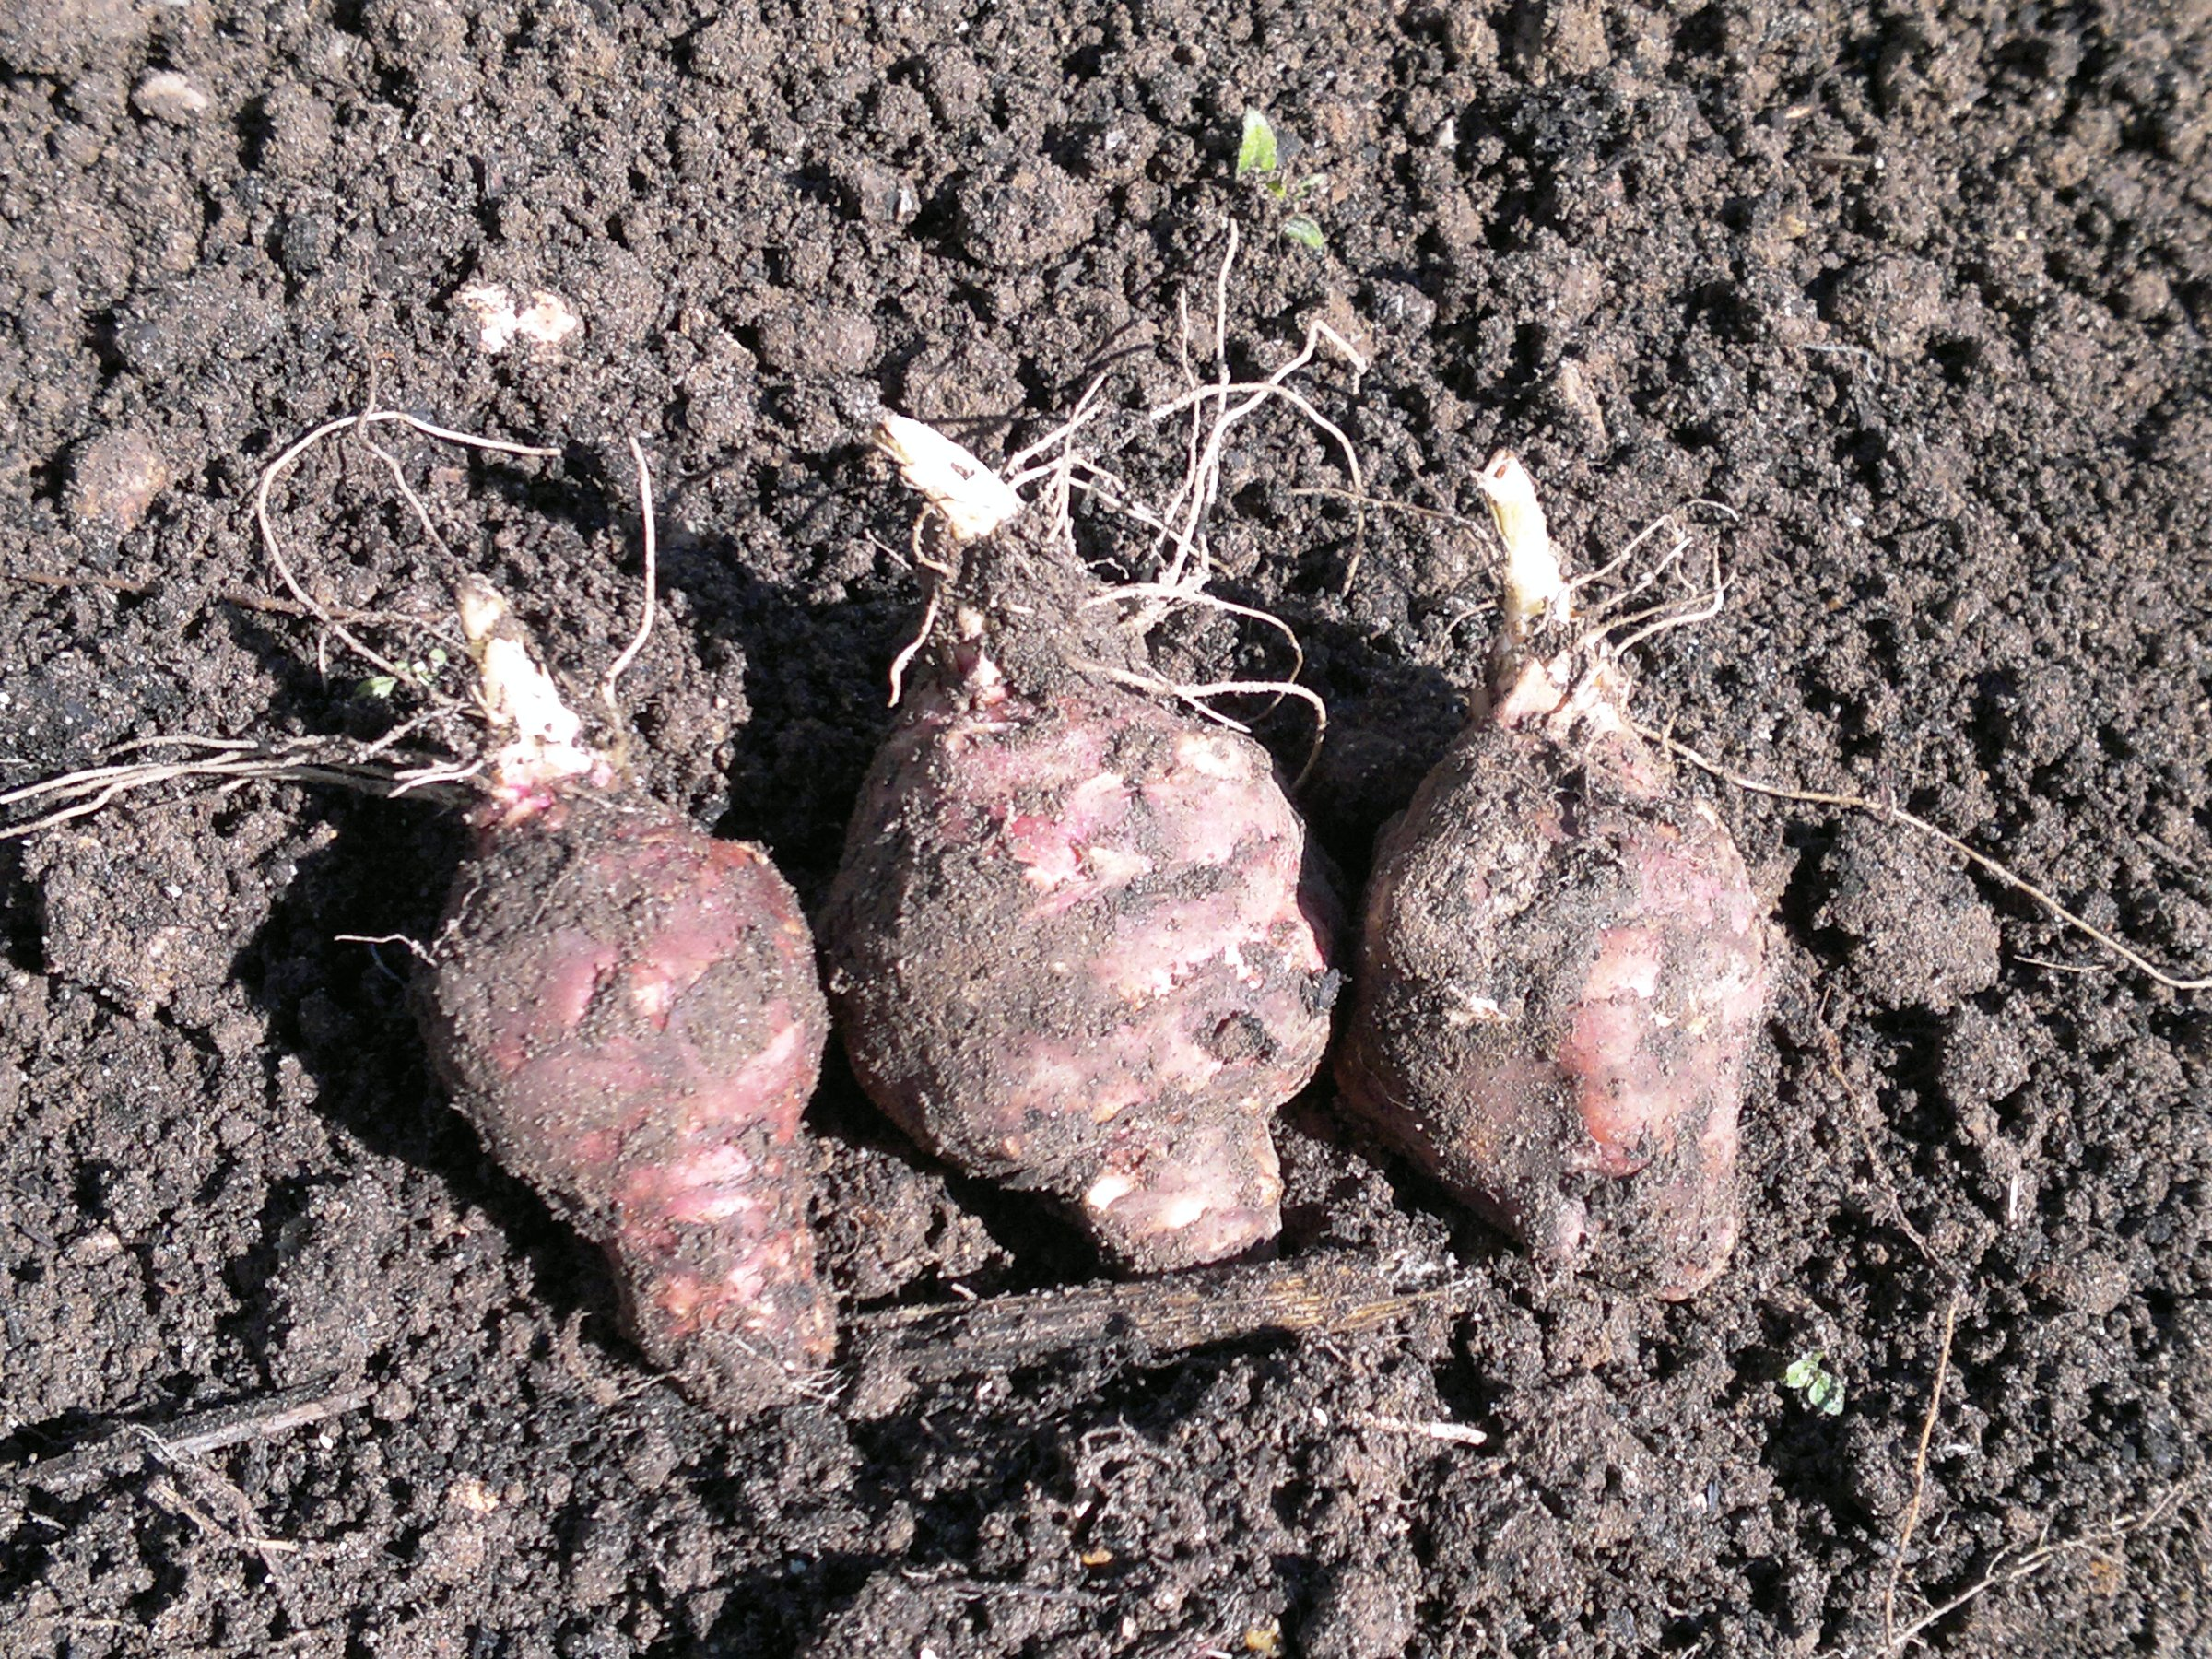 Jerusalem artichoke tubers with new roots and shoots